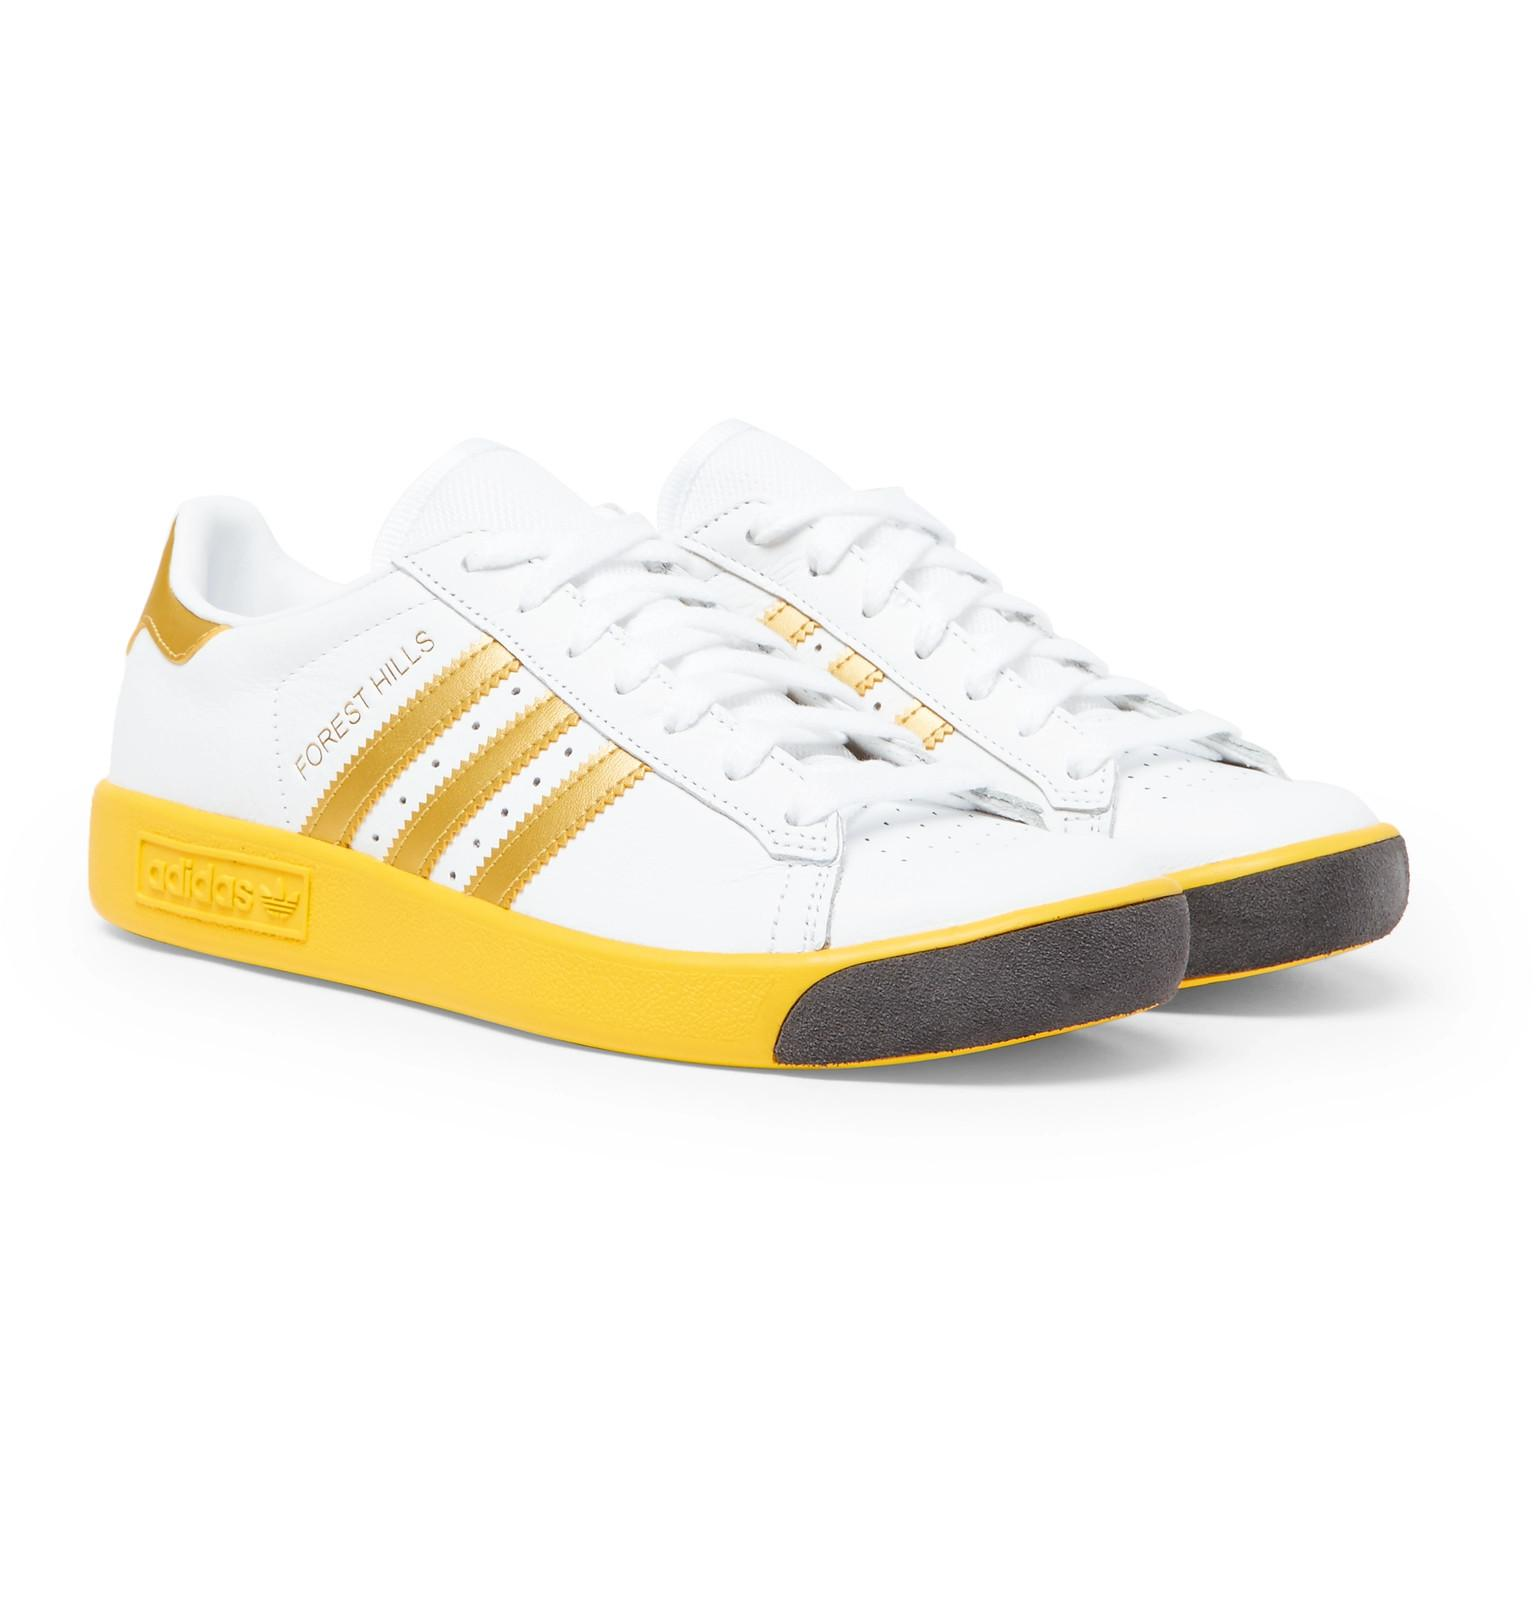 Forest Hills Full-grain Leather And Mesh Sneakers adidas Originals r9UfW